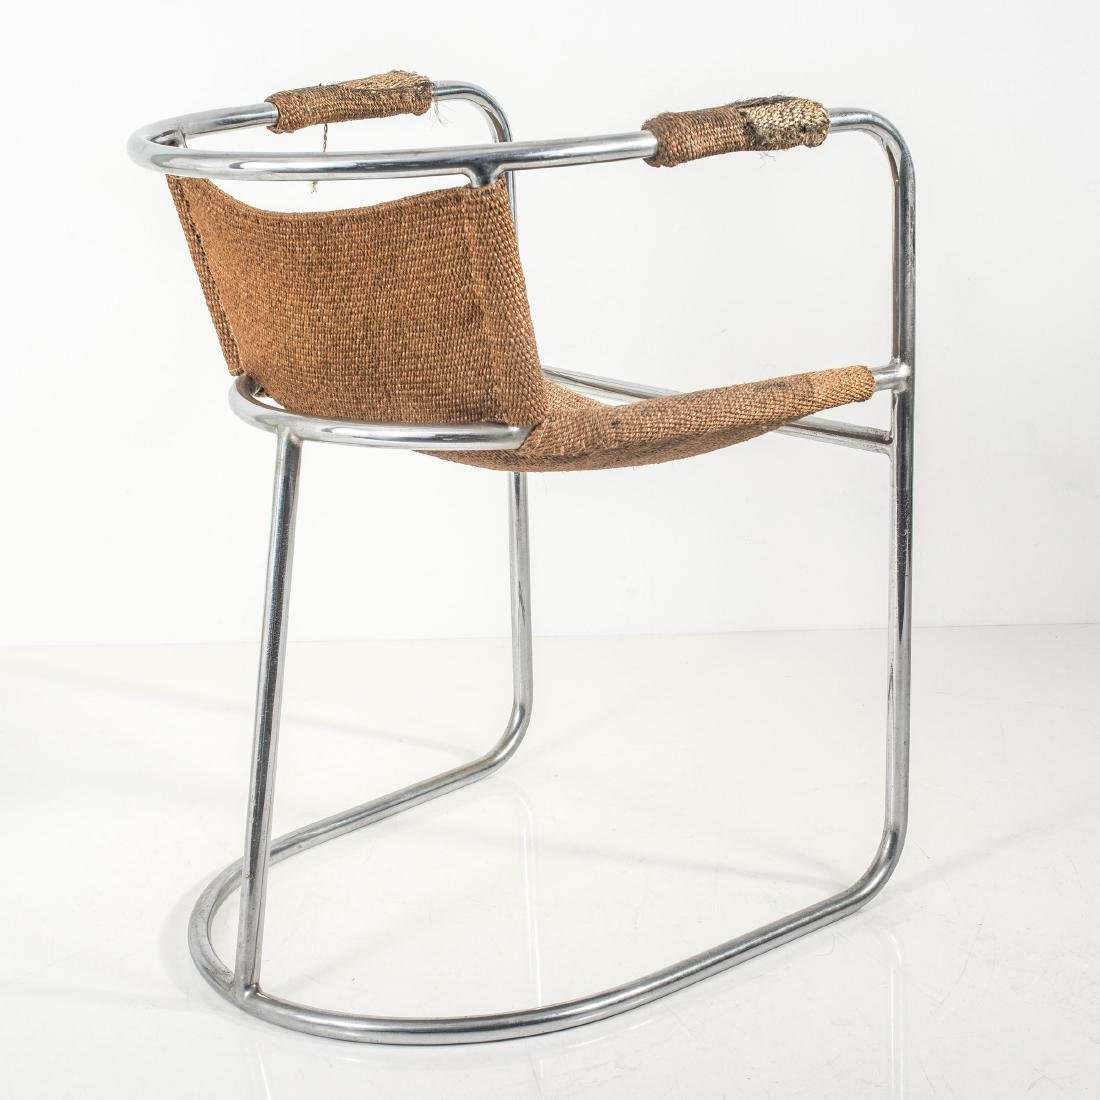 Tubular steel chair c. 1938 - 4